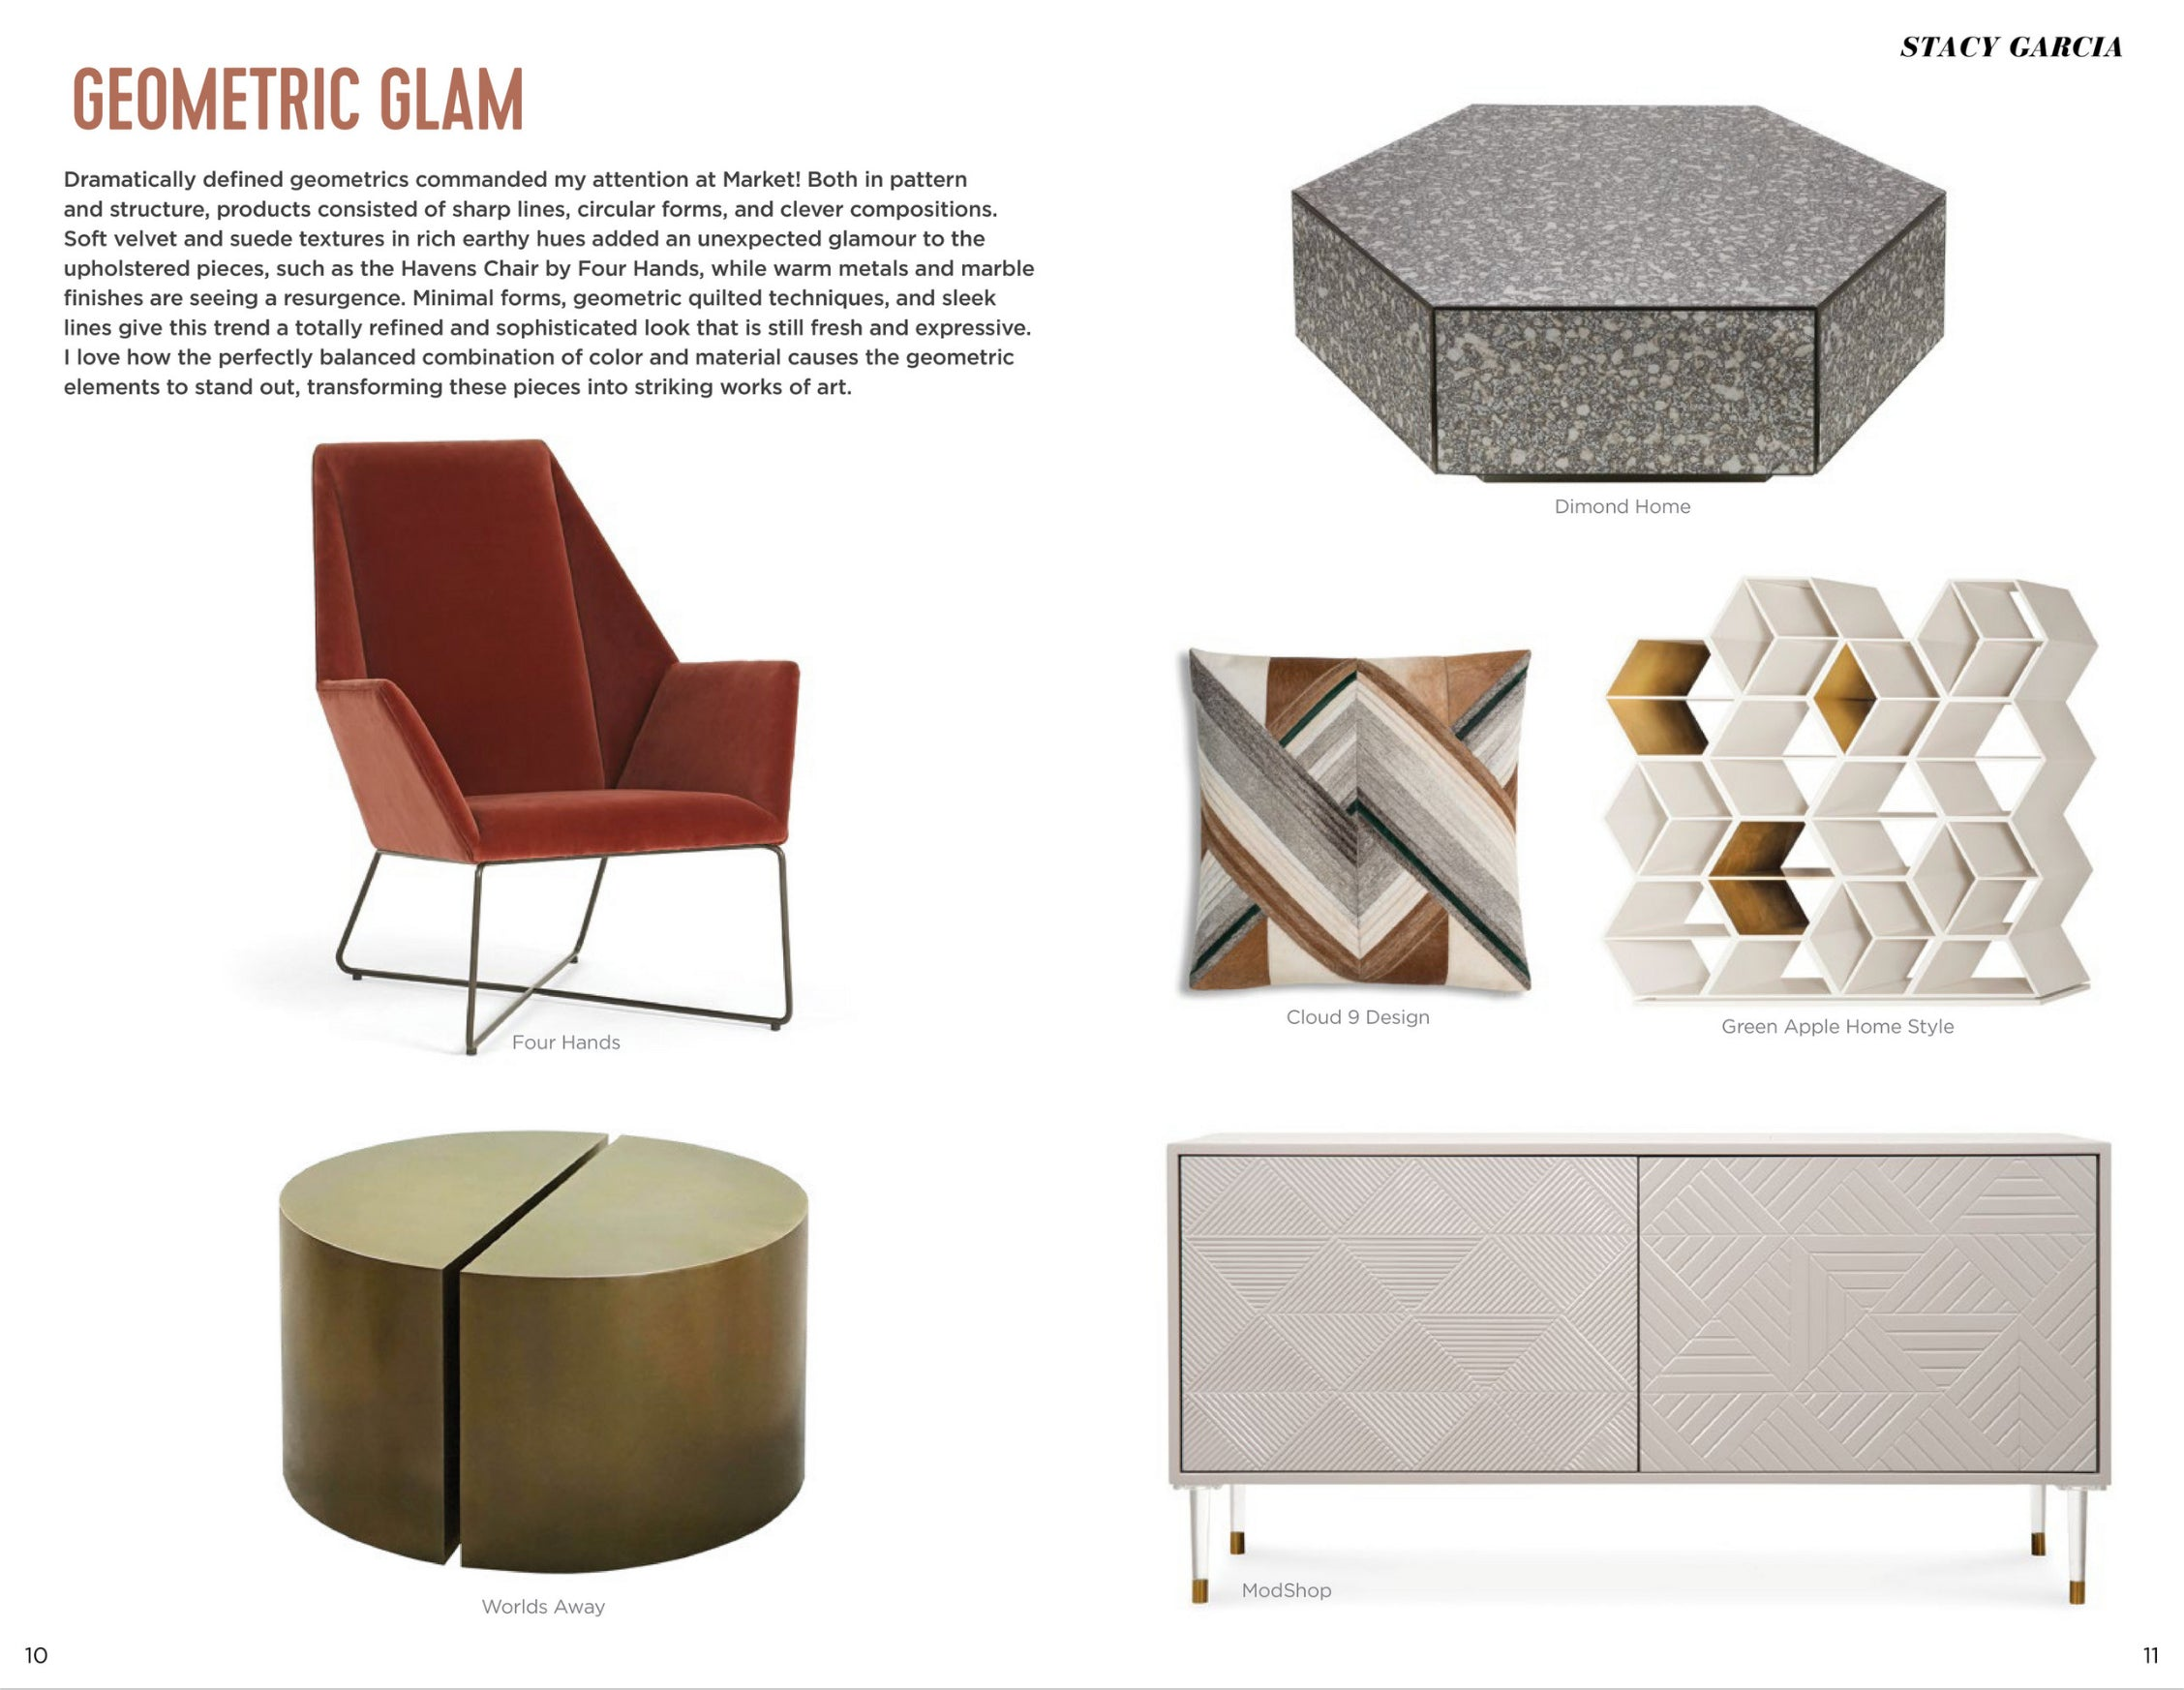 high point market style report article geometric glam by stacy garcia featuring modshop's monaco petite credenza in smoke ember